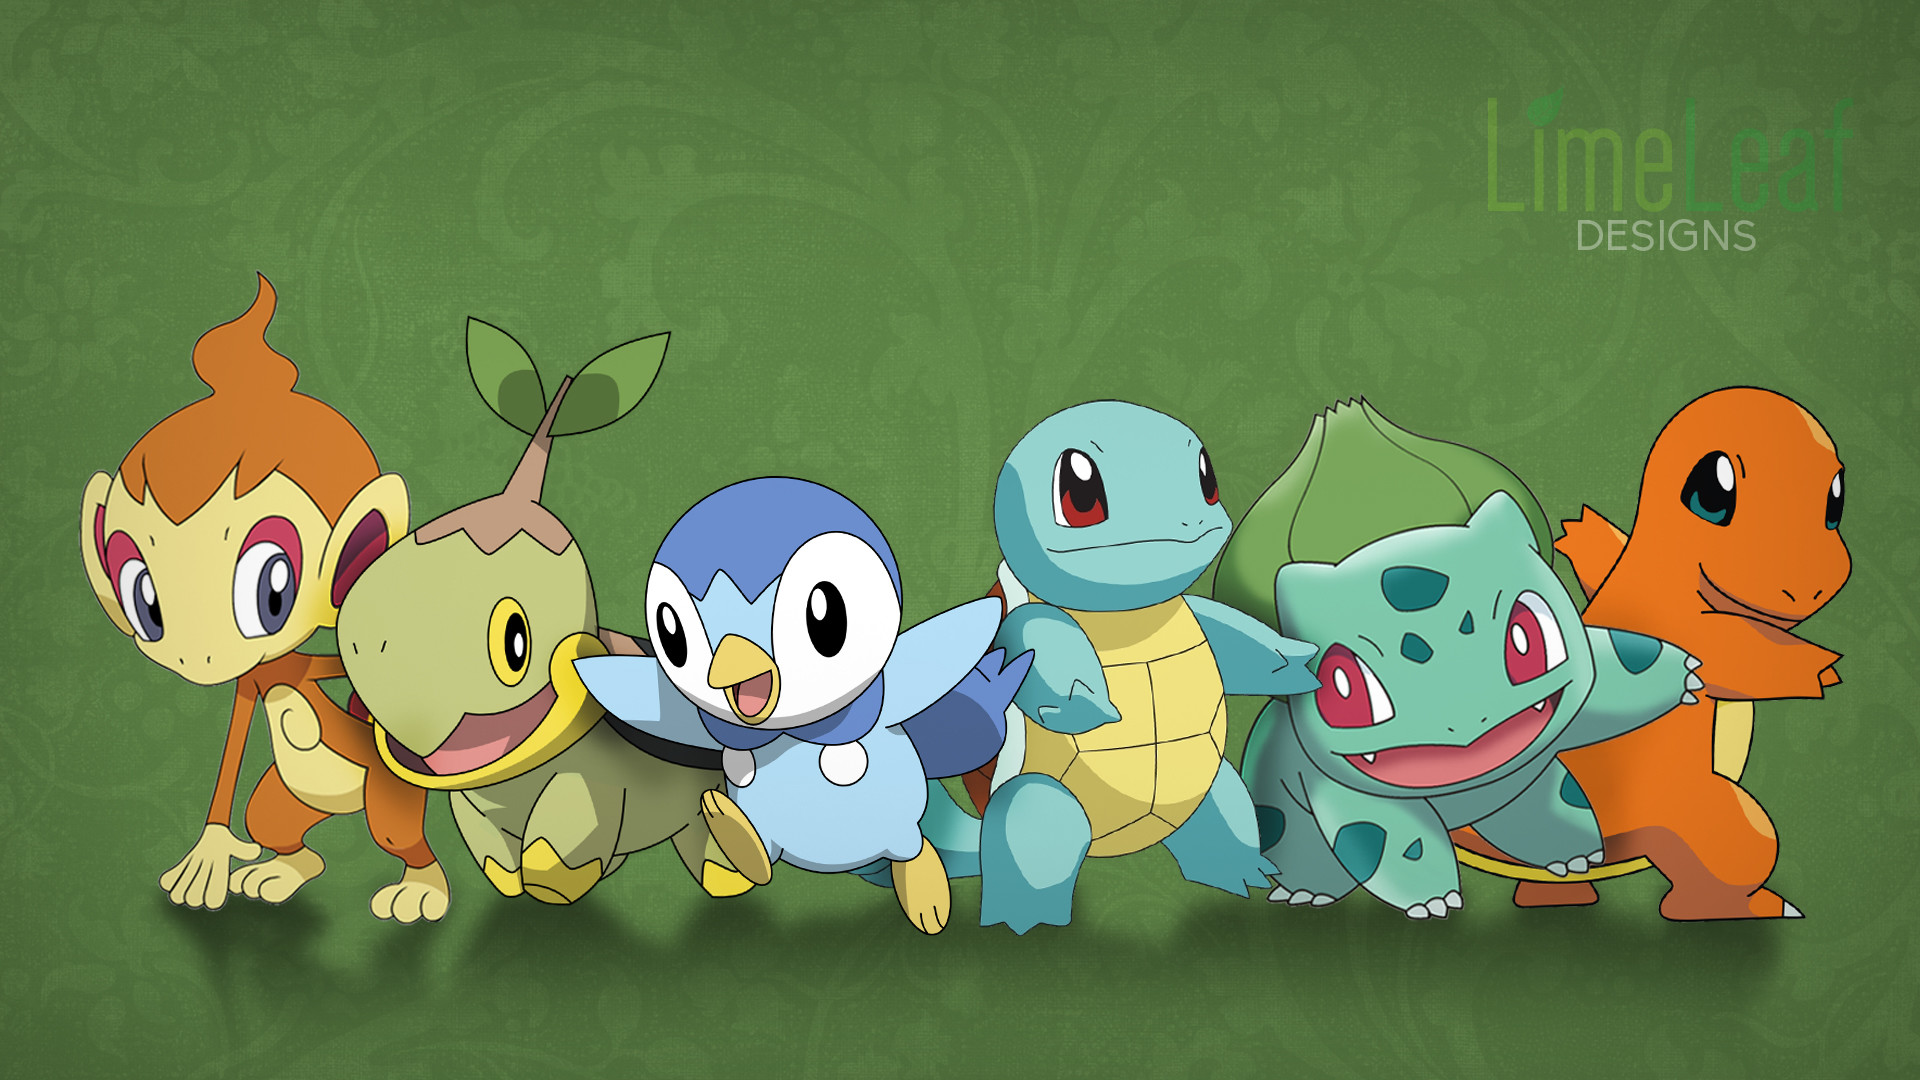 Res: 1920x1080, Picturesque Pokemon Make A List How To Create Your Own Personalized Pokemon  Wallpaper Designing in Create